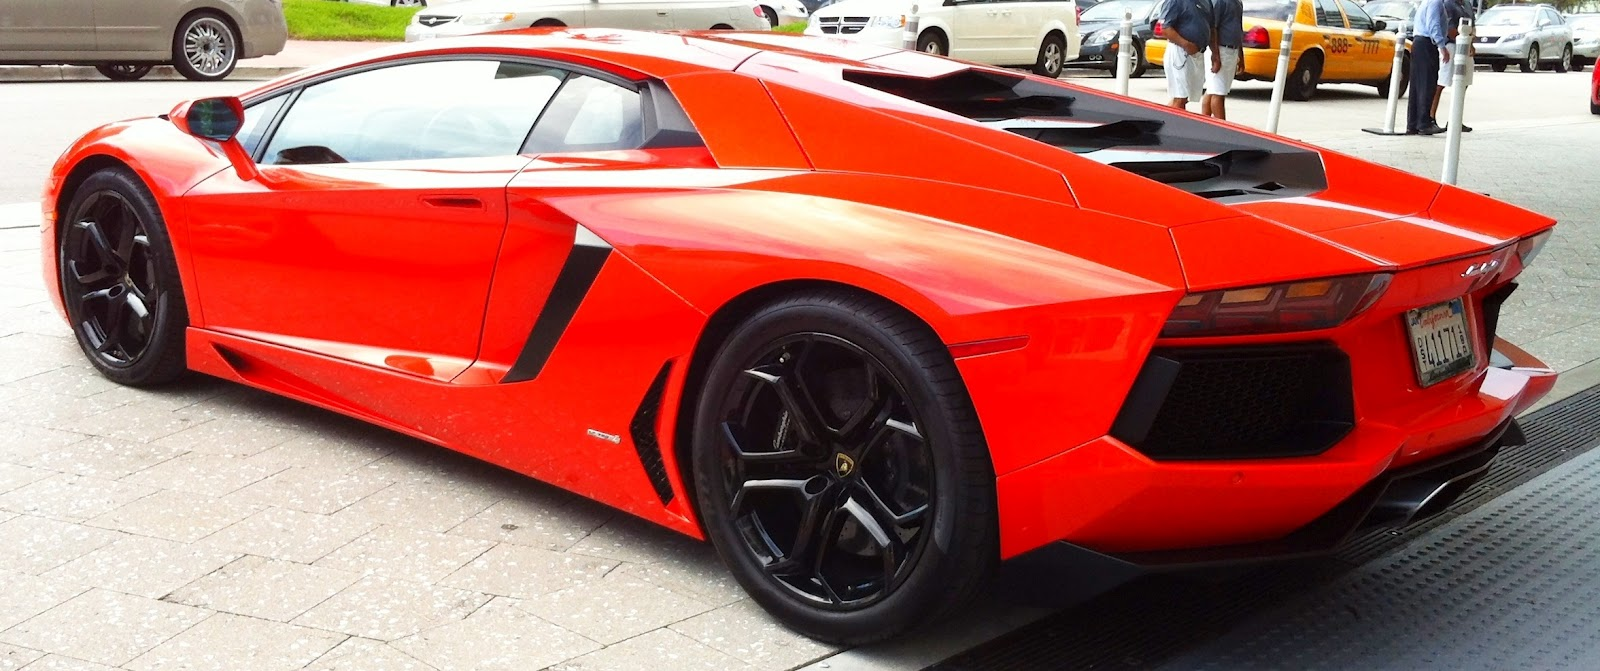 Orange And Black Lamborghini Aventador | www.imgkid.com ...